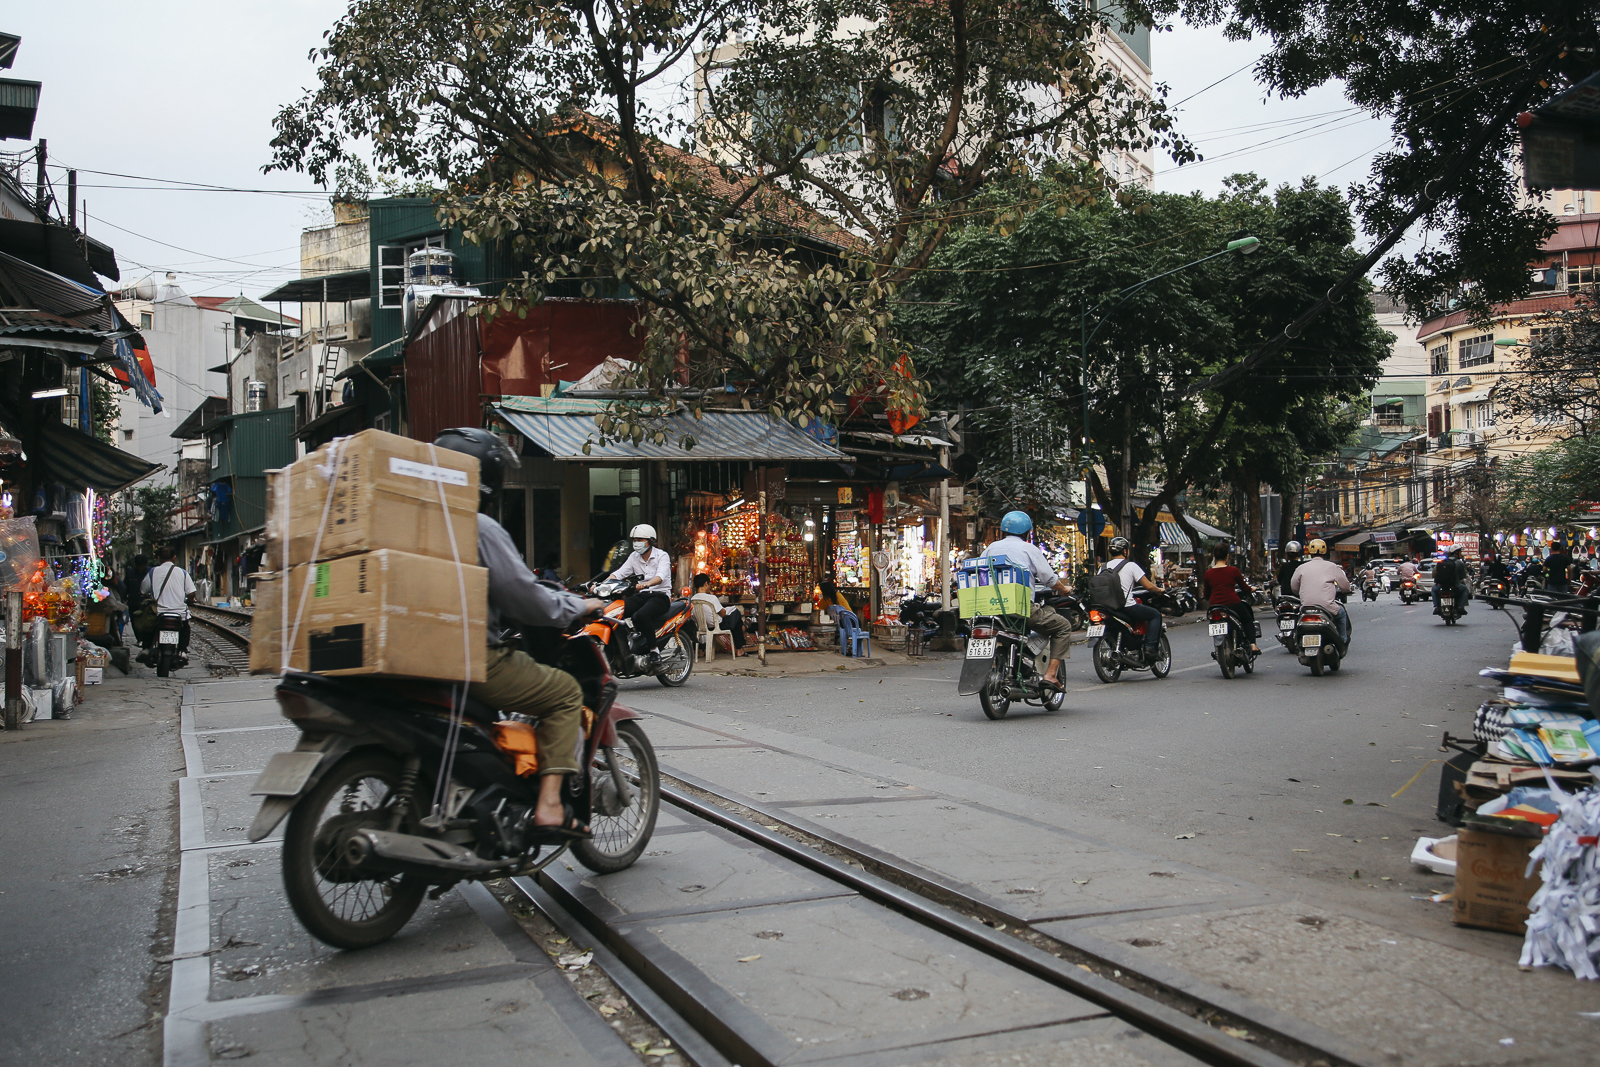 Hanoi_18, Hanoi, Vietnam, Photo and Travel Diary by The Curly Head, Photography by Amelie Niederbuchner,